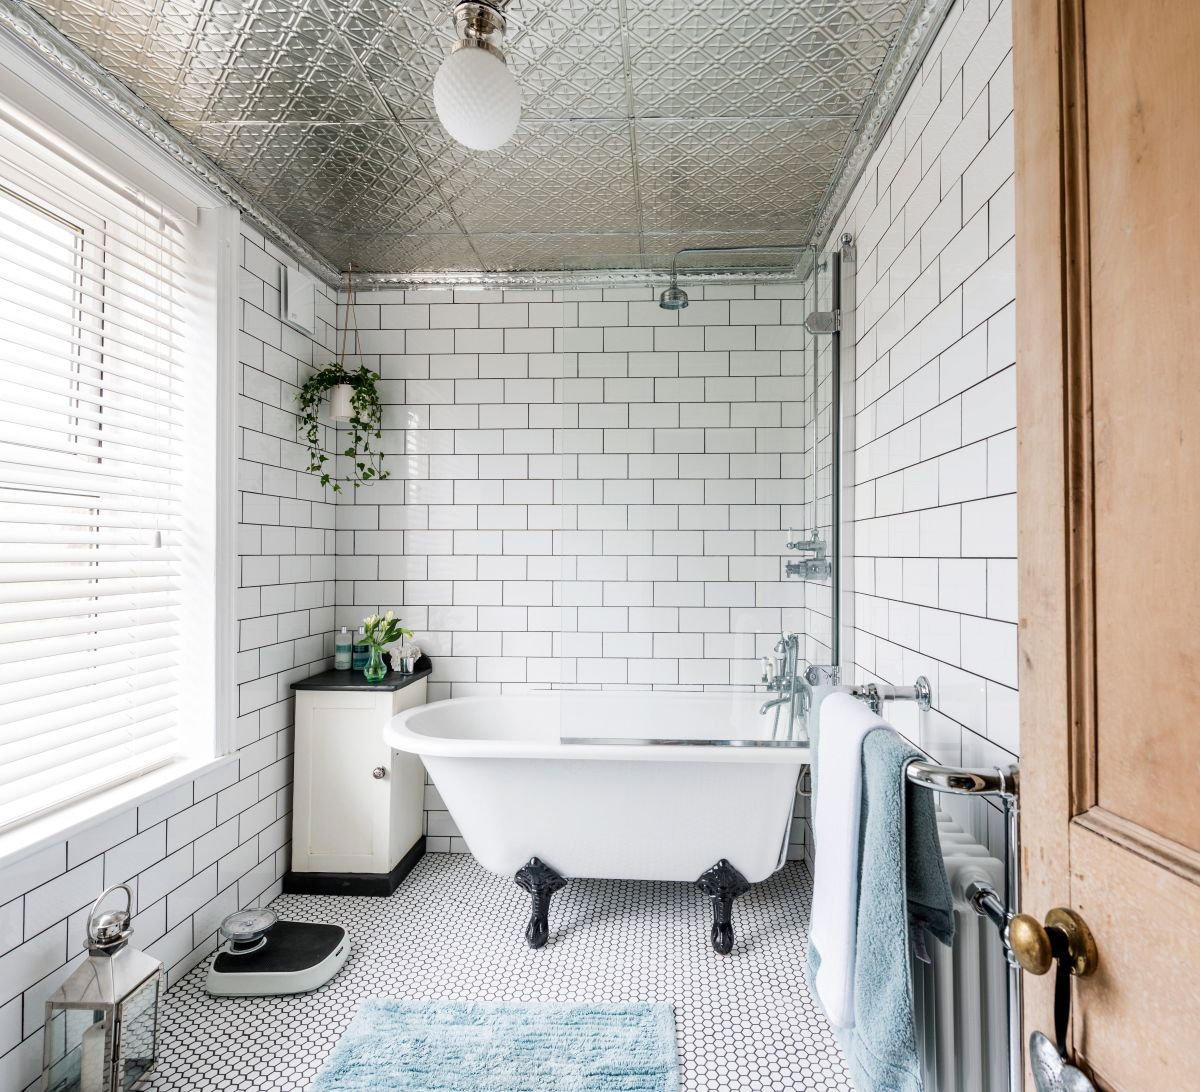 How to clean a bathroom from top to bottom!